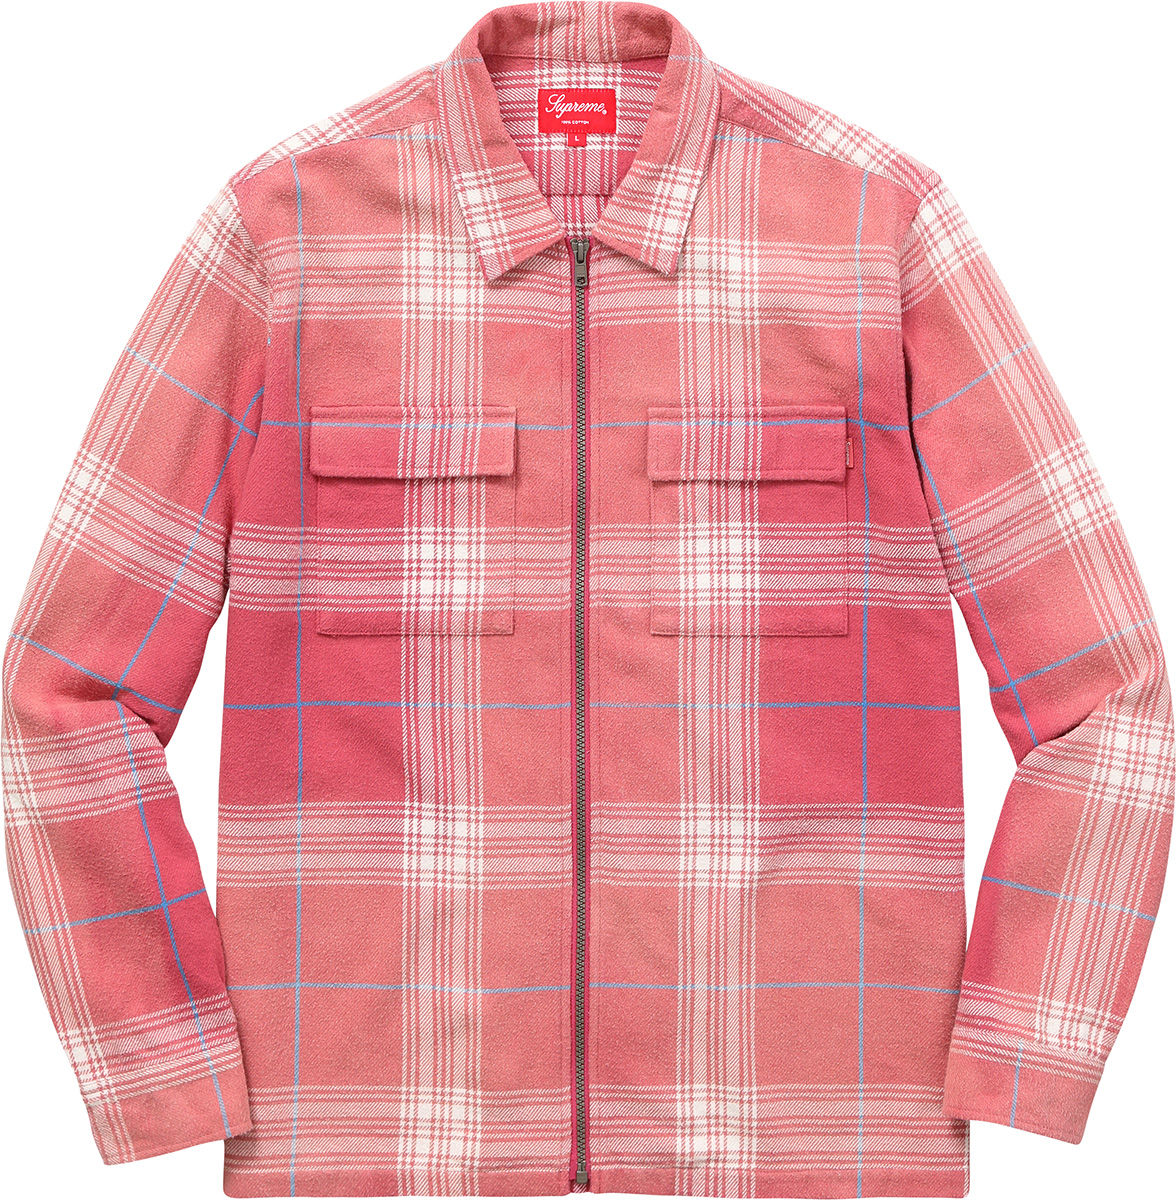 supreme faded plaid flannel zip up shirt